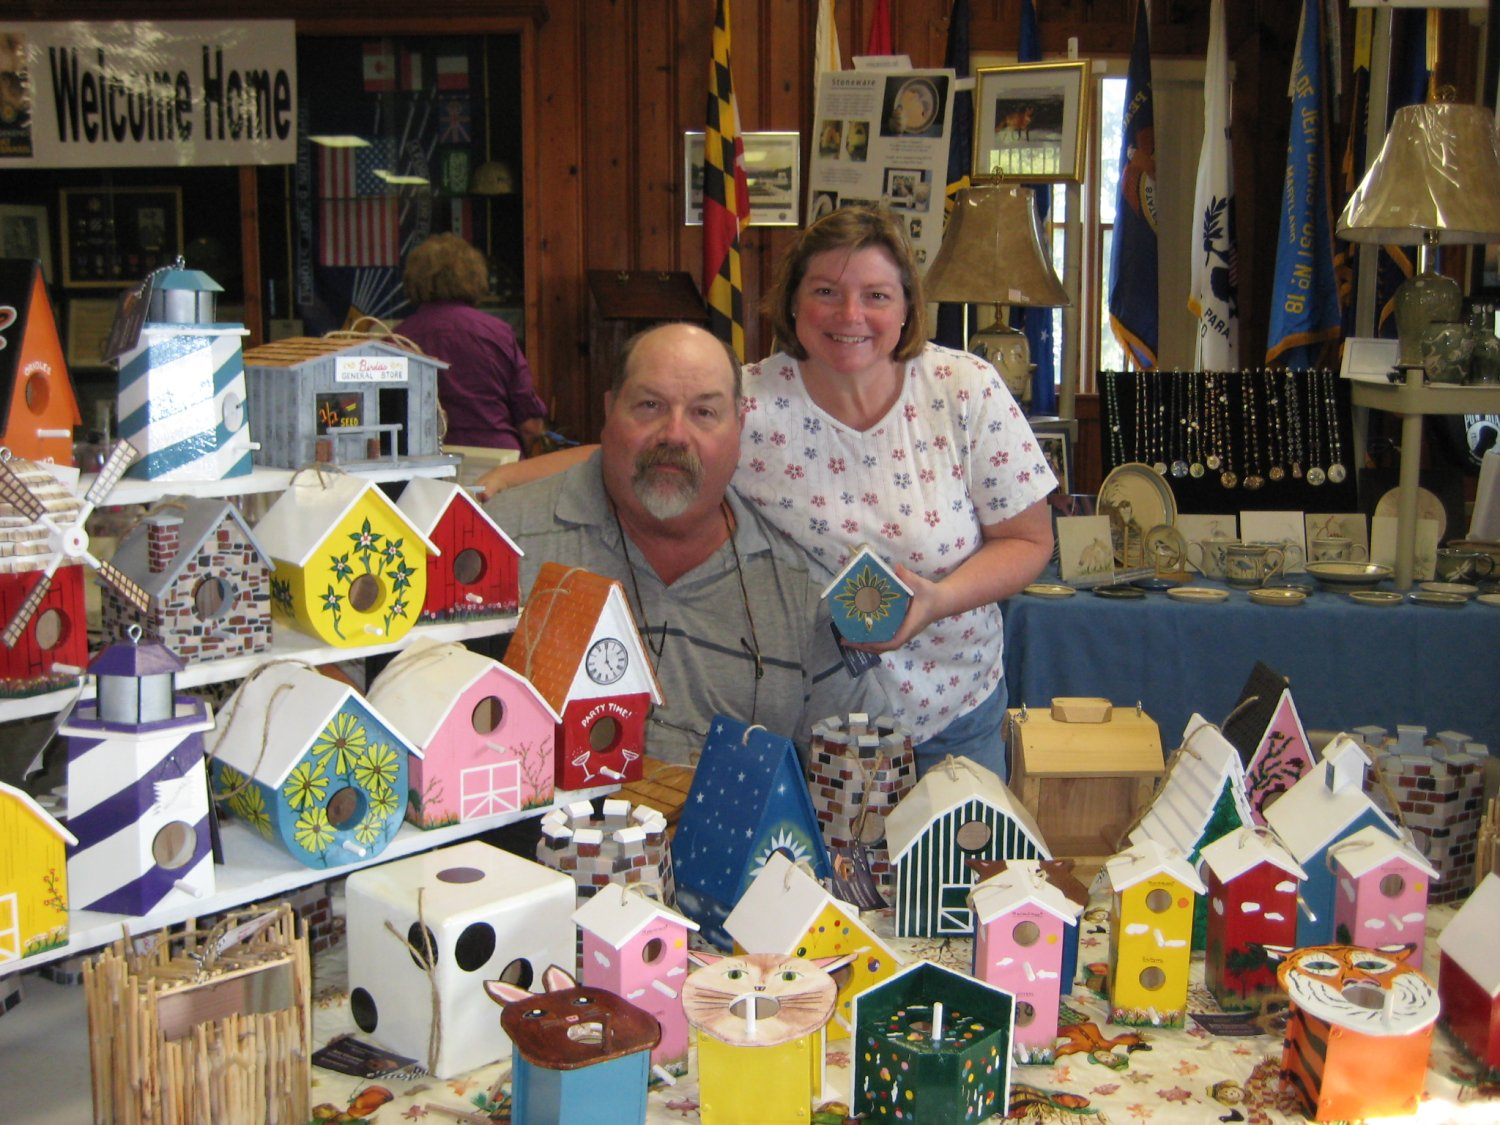 Jerry and Brenda Gessaman showed handcrafted and handpainted bird houses and bird feeders.